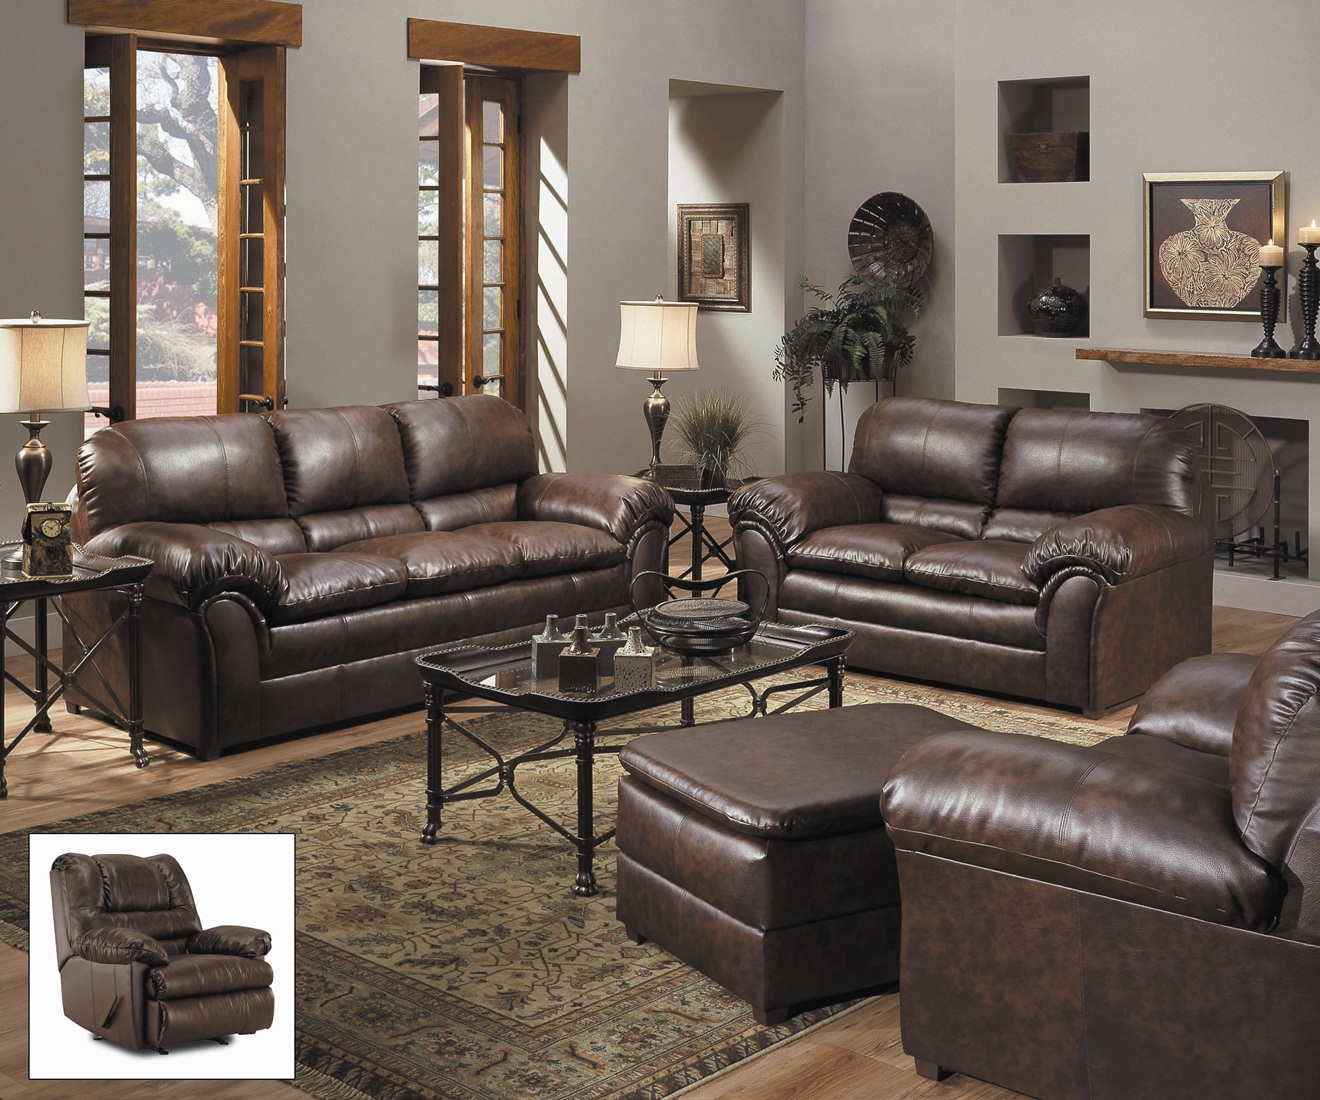 geneva classic brown bonded leather living room furniture couch set. Black Bedroom Furniture Sets. Home Design Ideas